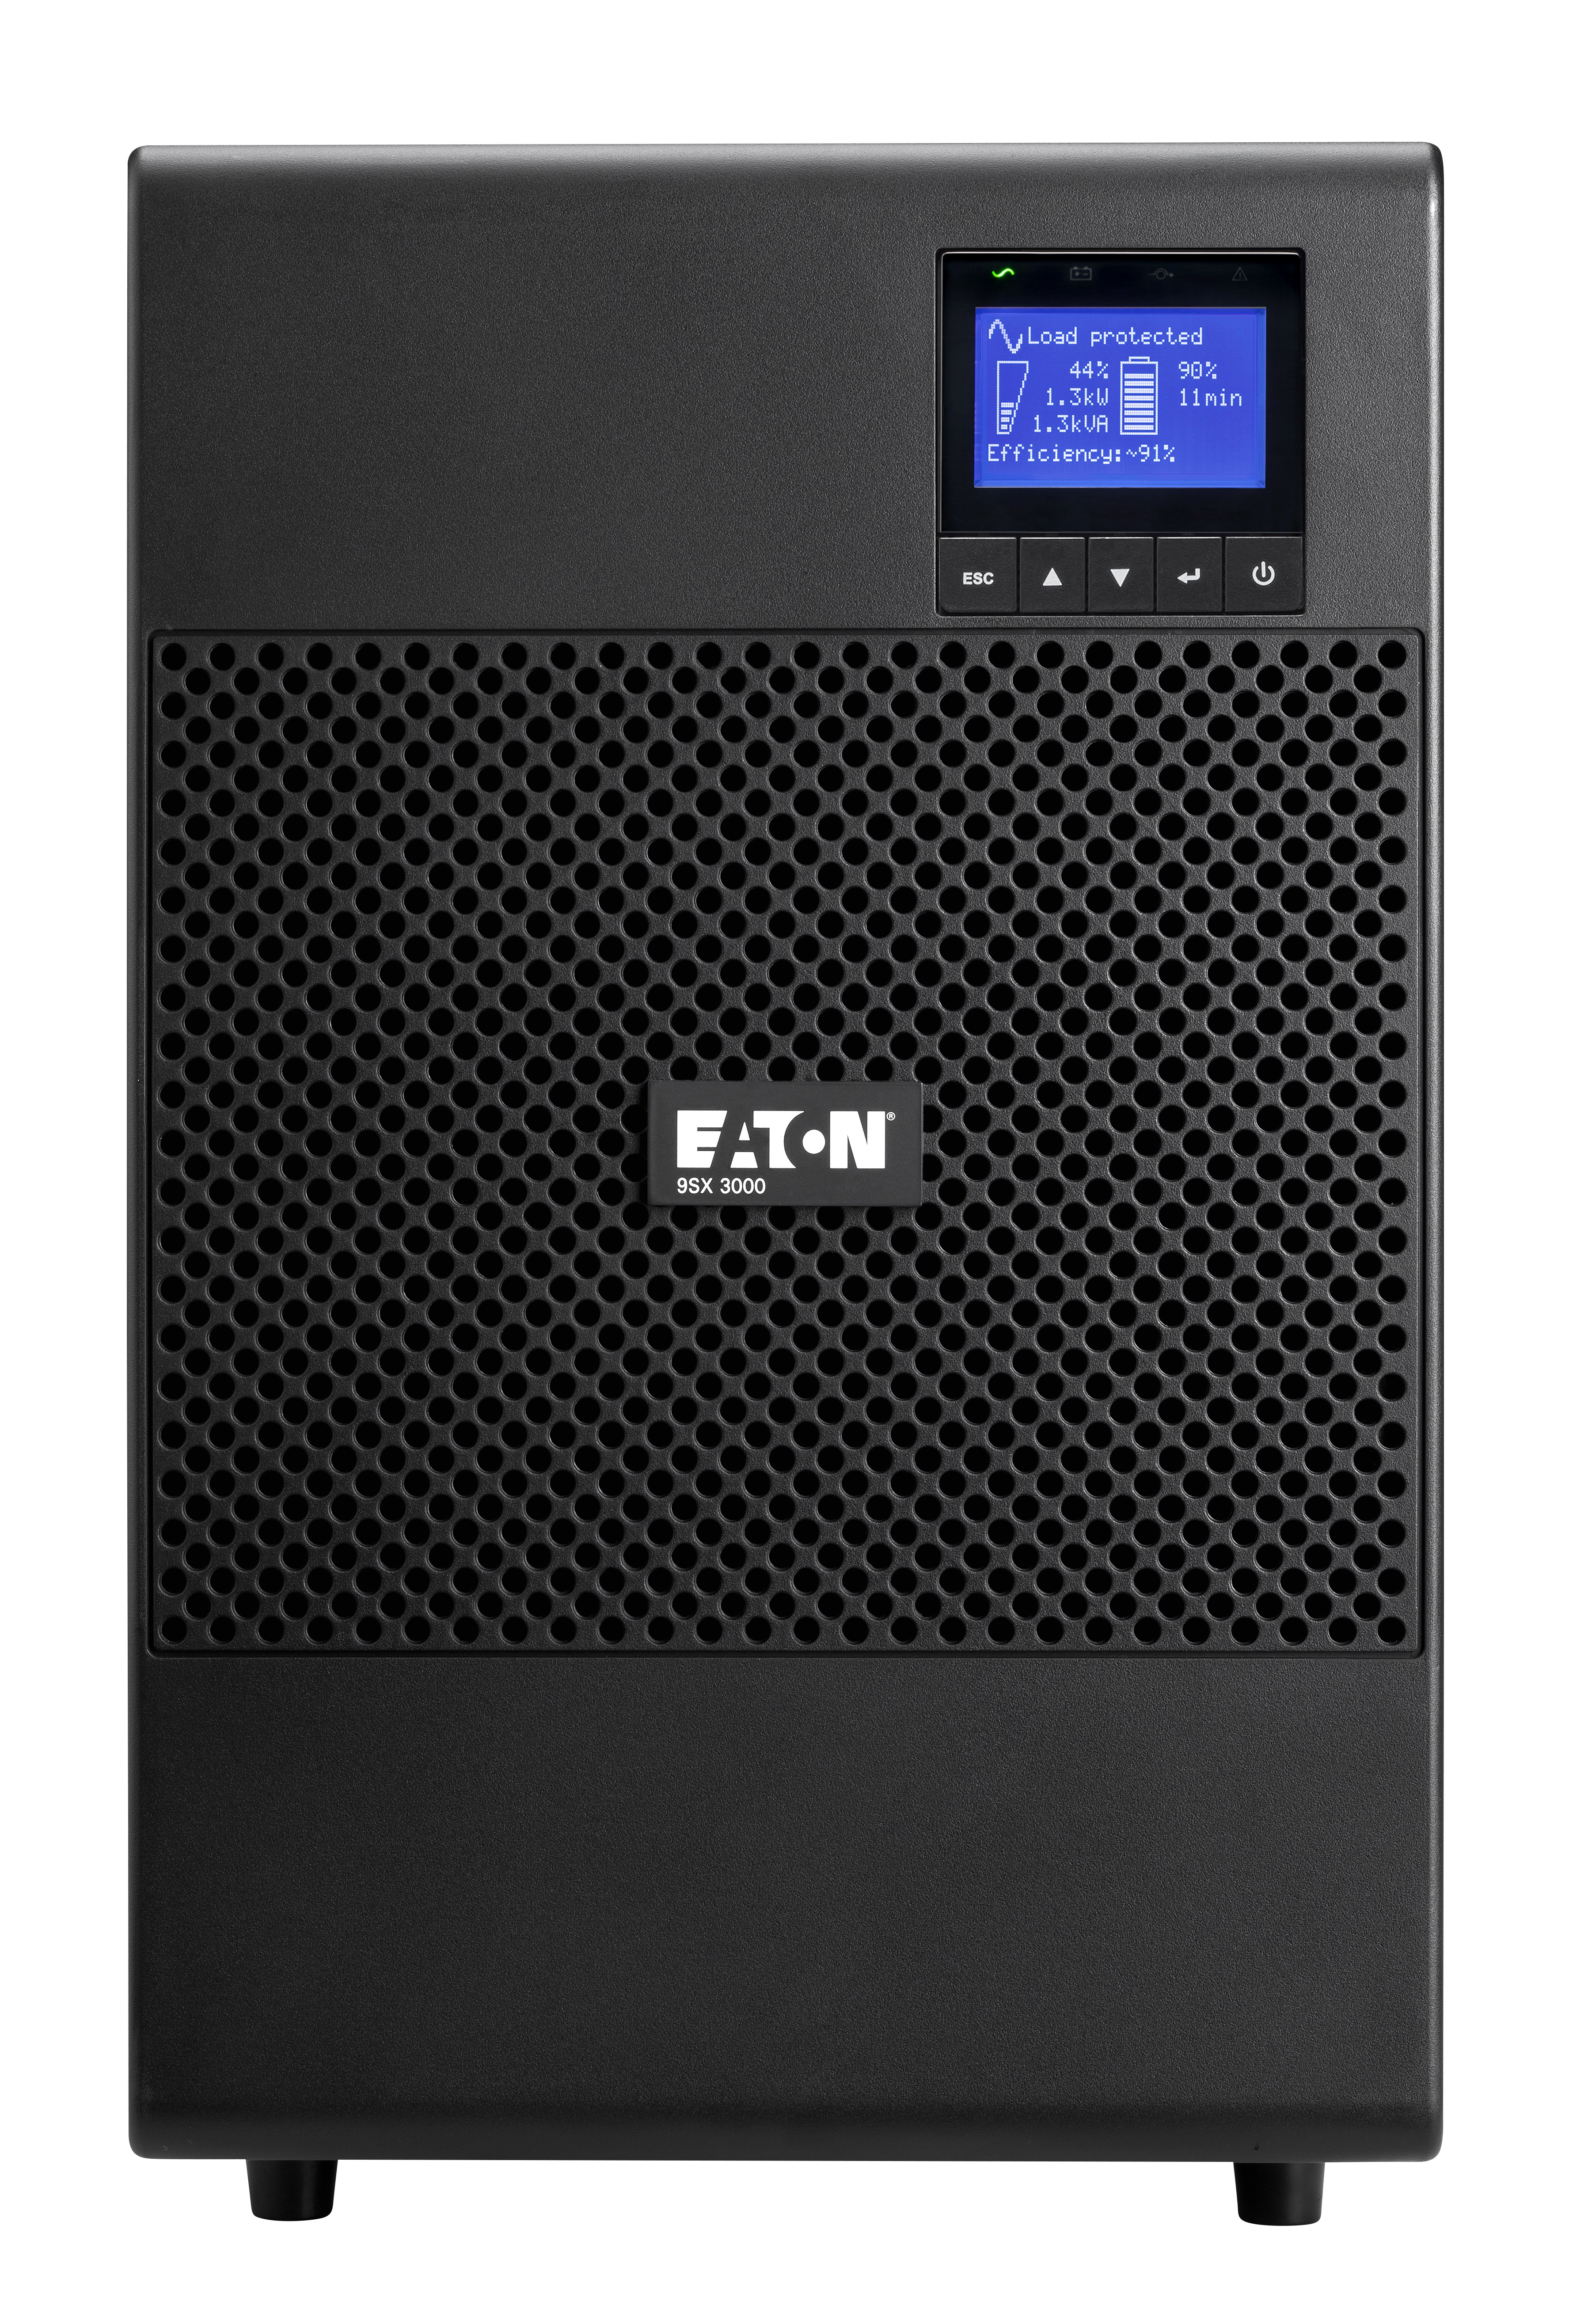 An image of Eaton 9SX 3kVA Power Factor Correction UPS (6 Minutes Runtime)